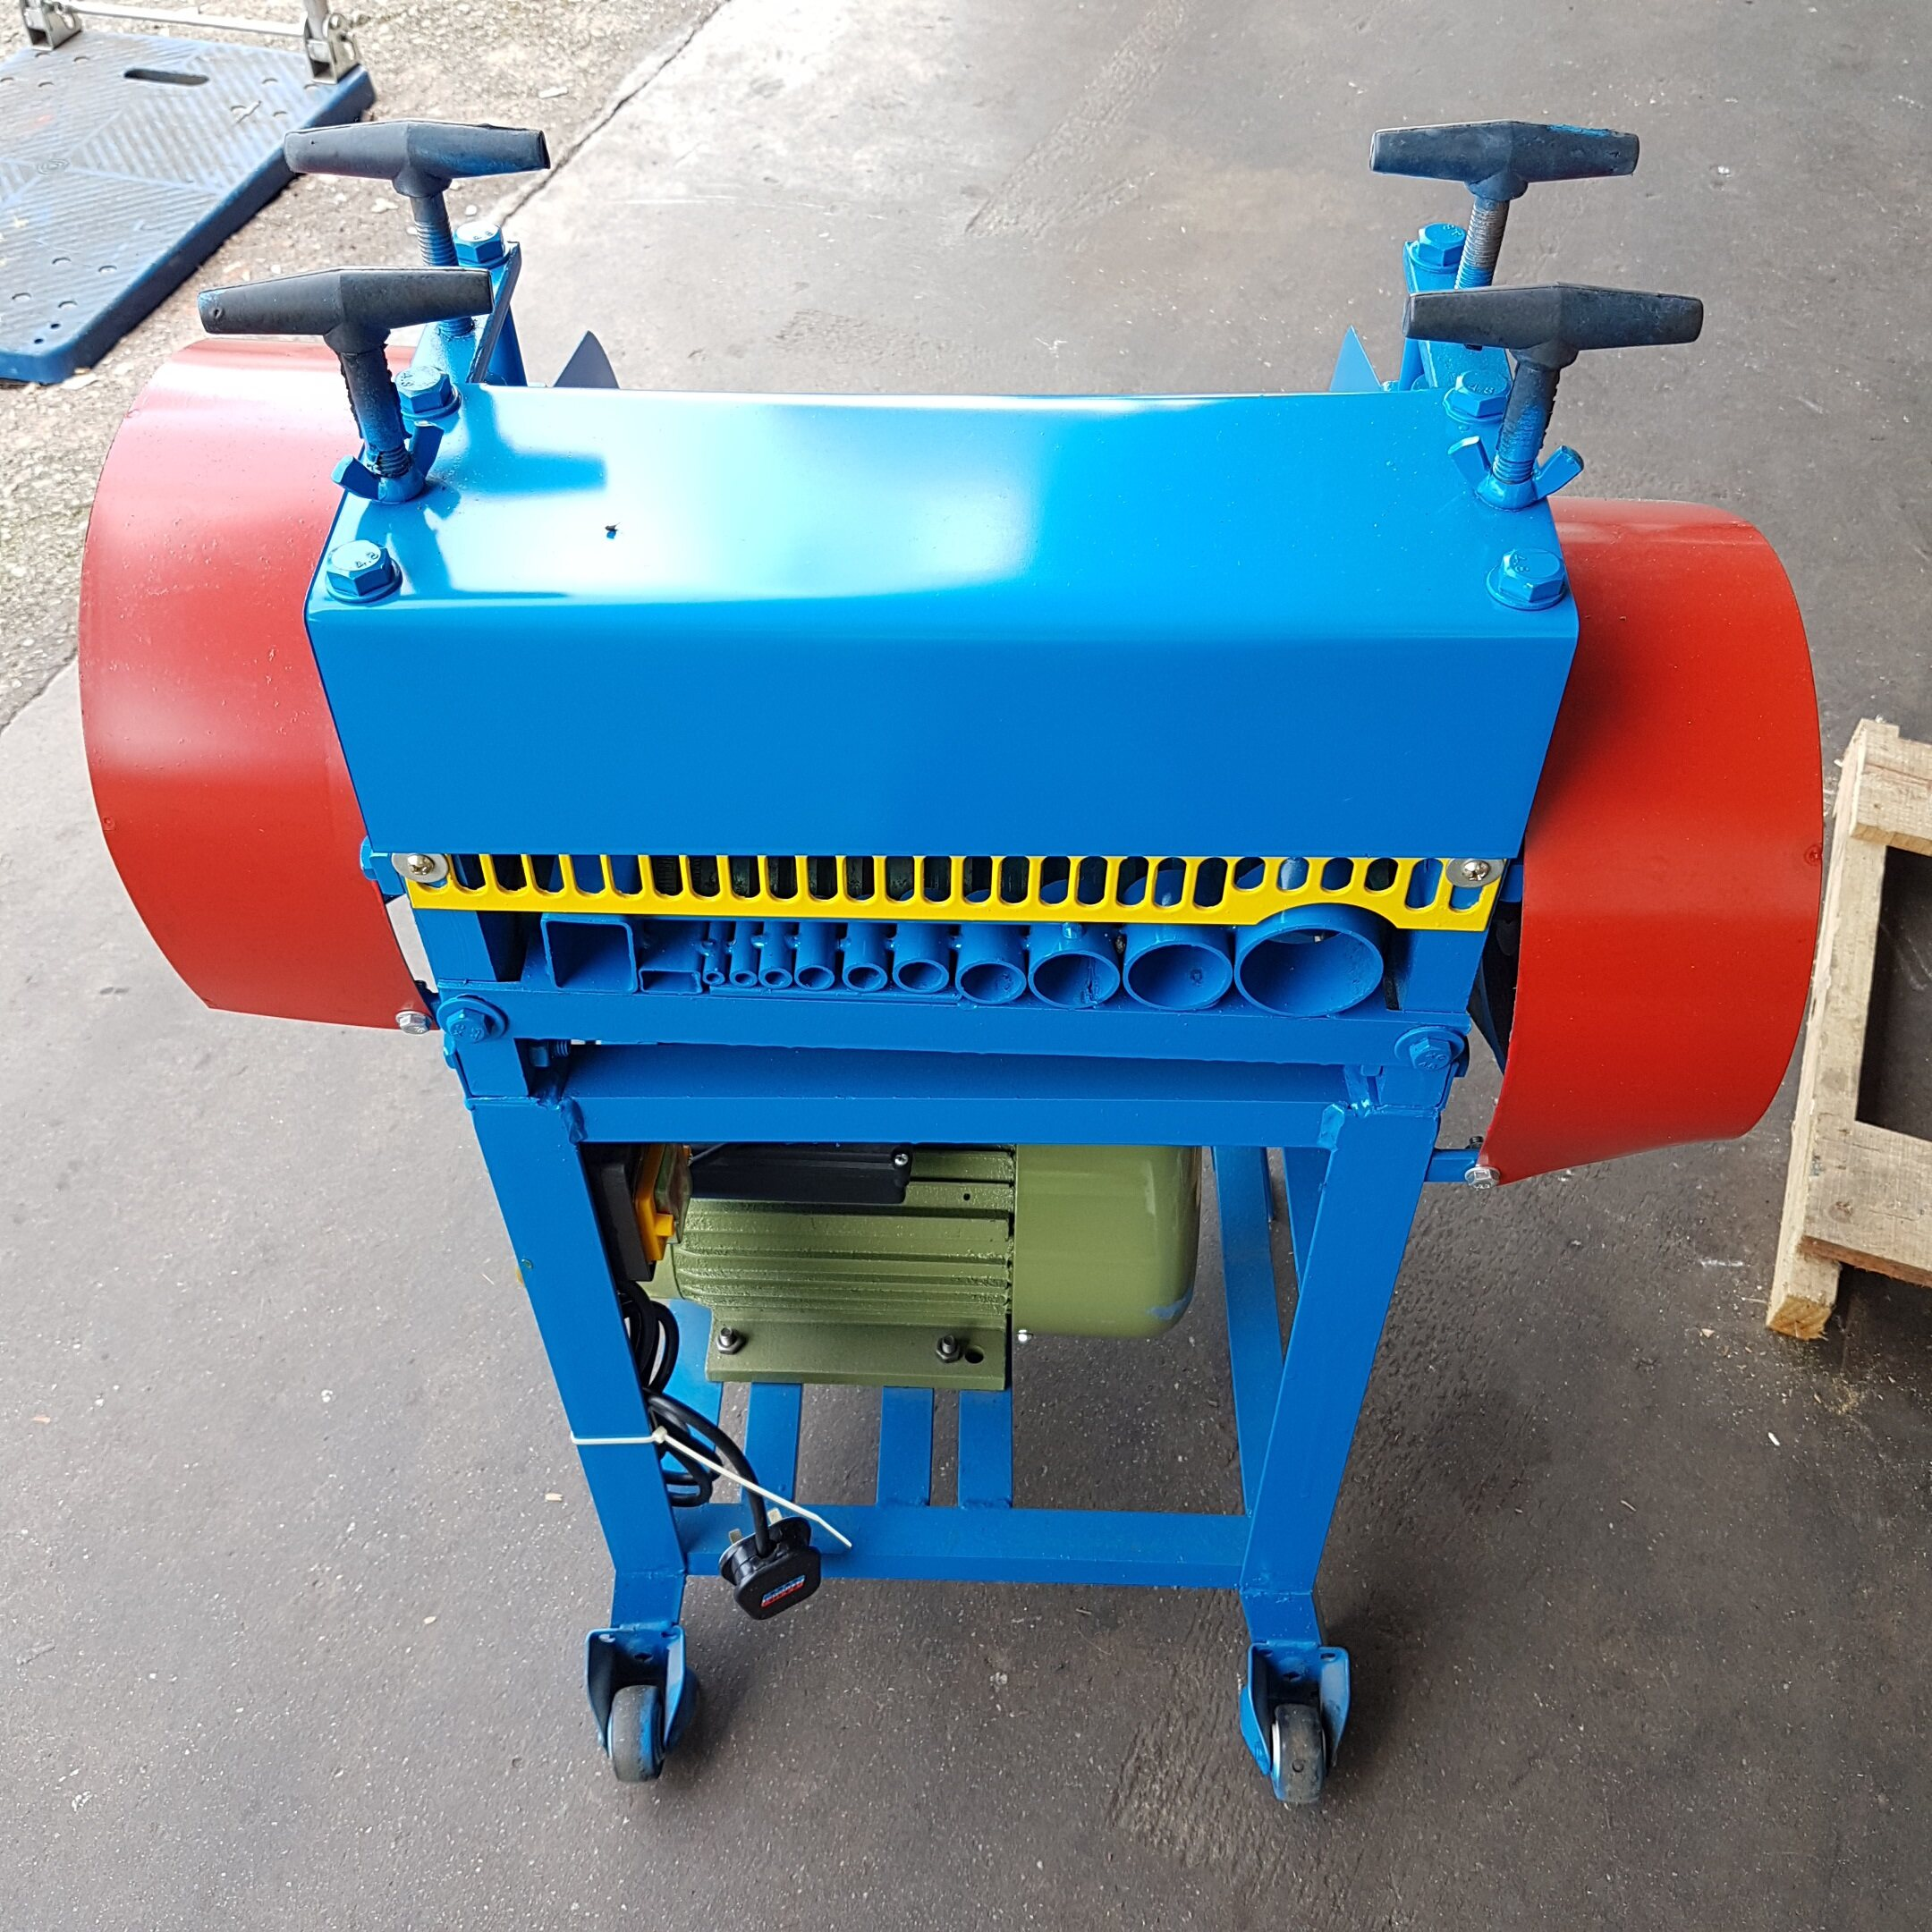 wire skin rubber fast copper metal cut cutter cutting strip stripper machine drill drilling grinder double slice slicer slicing in side out size big press pressure high low adjust motor belt roll roller rolling handle auto power tool electric wheel gear